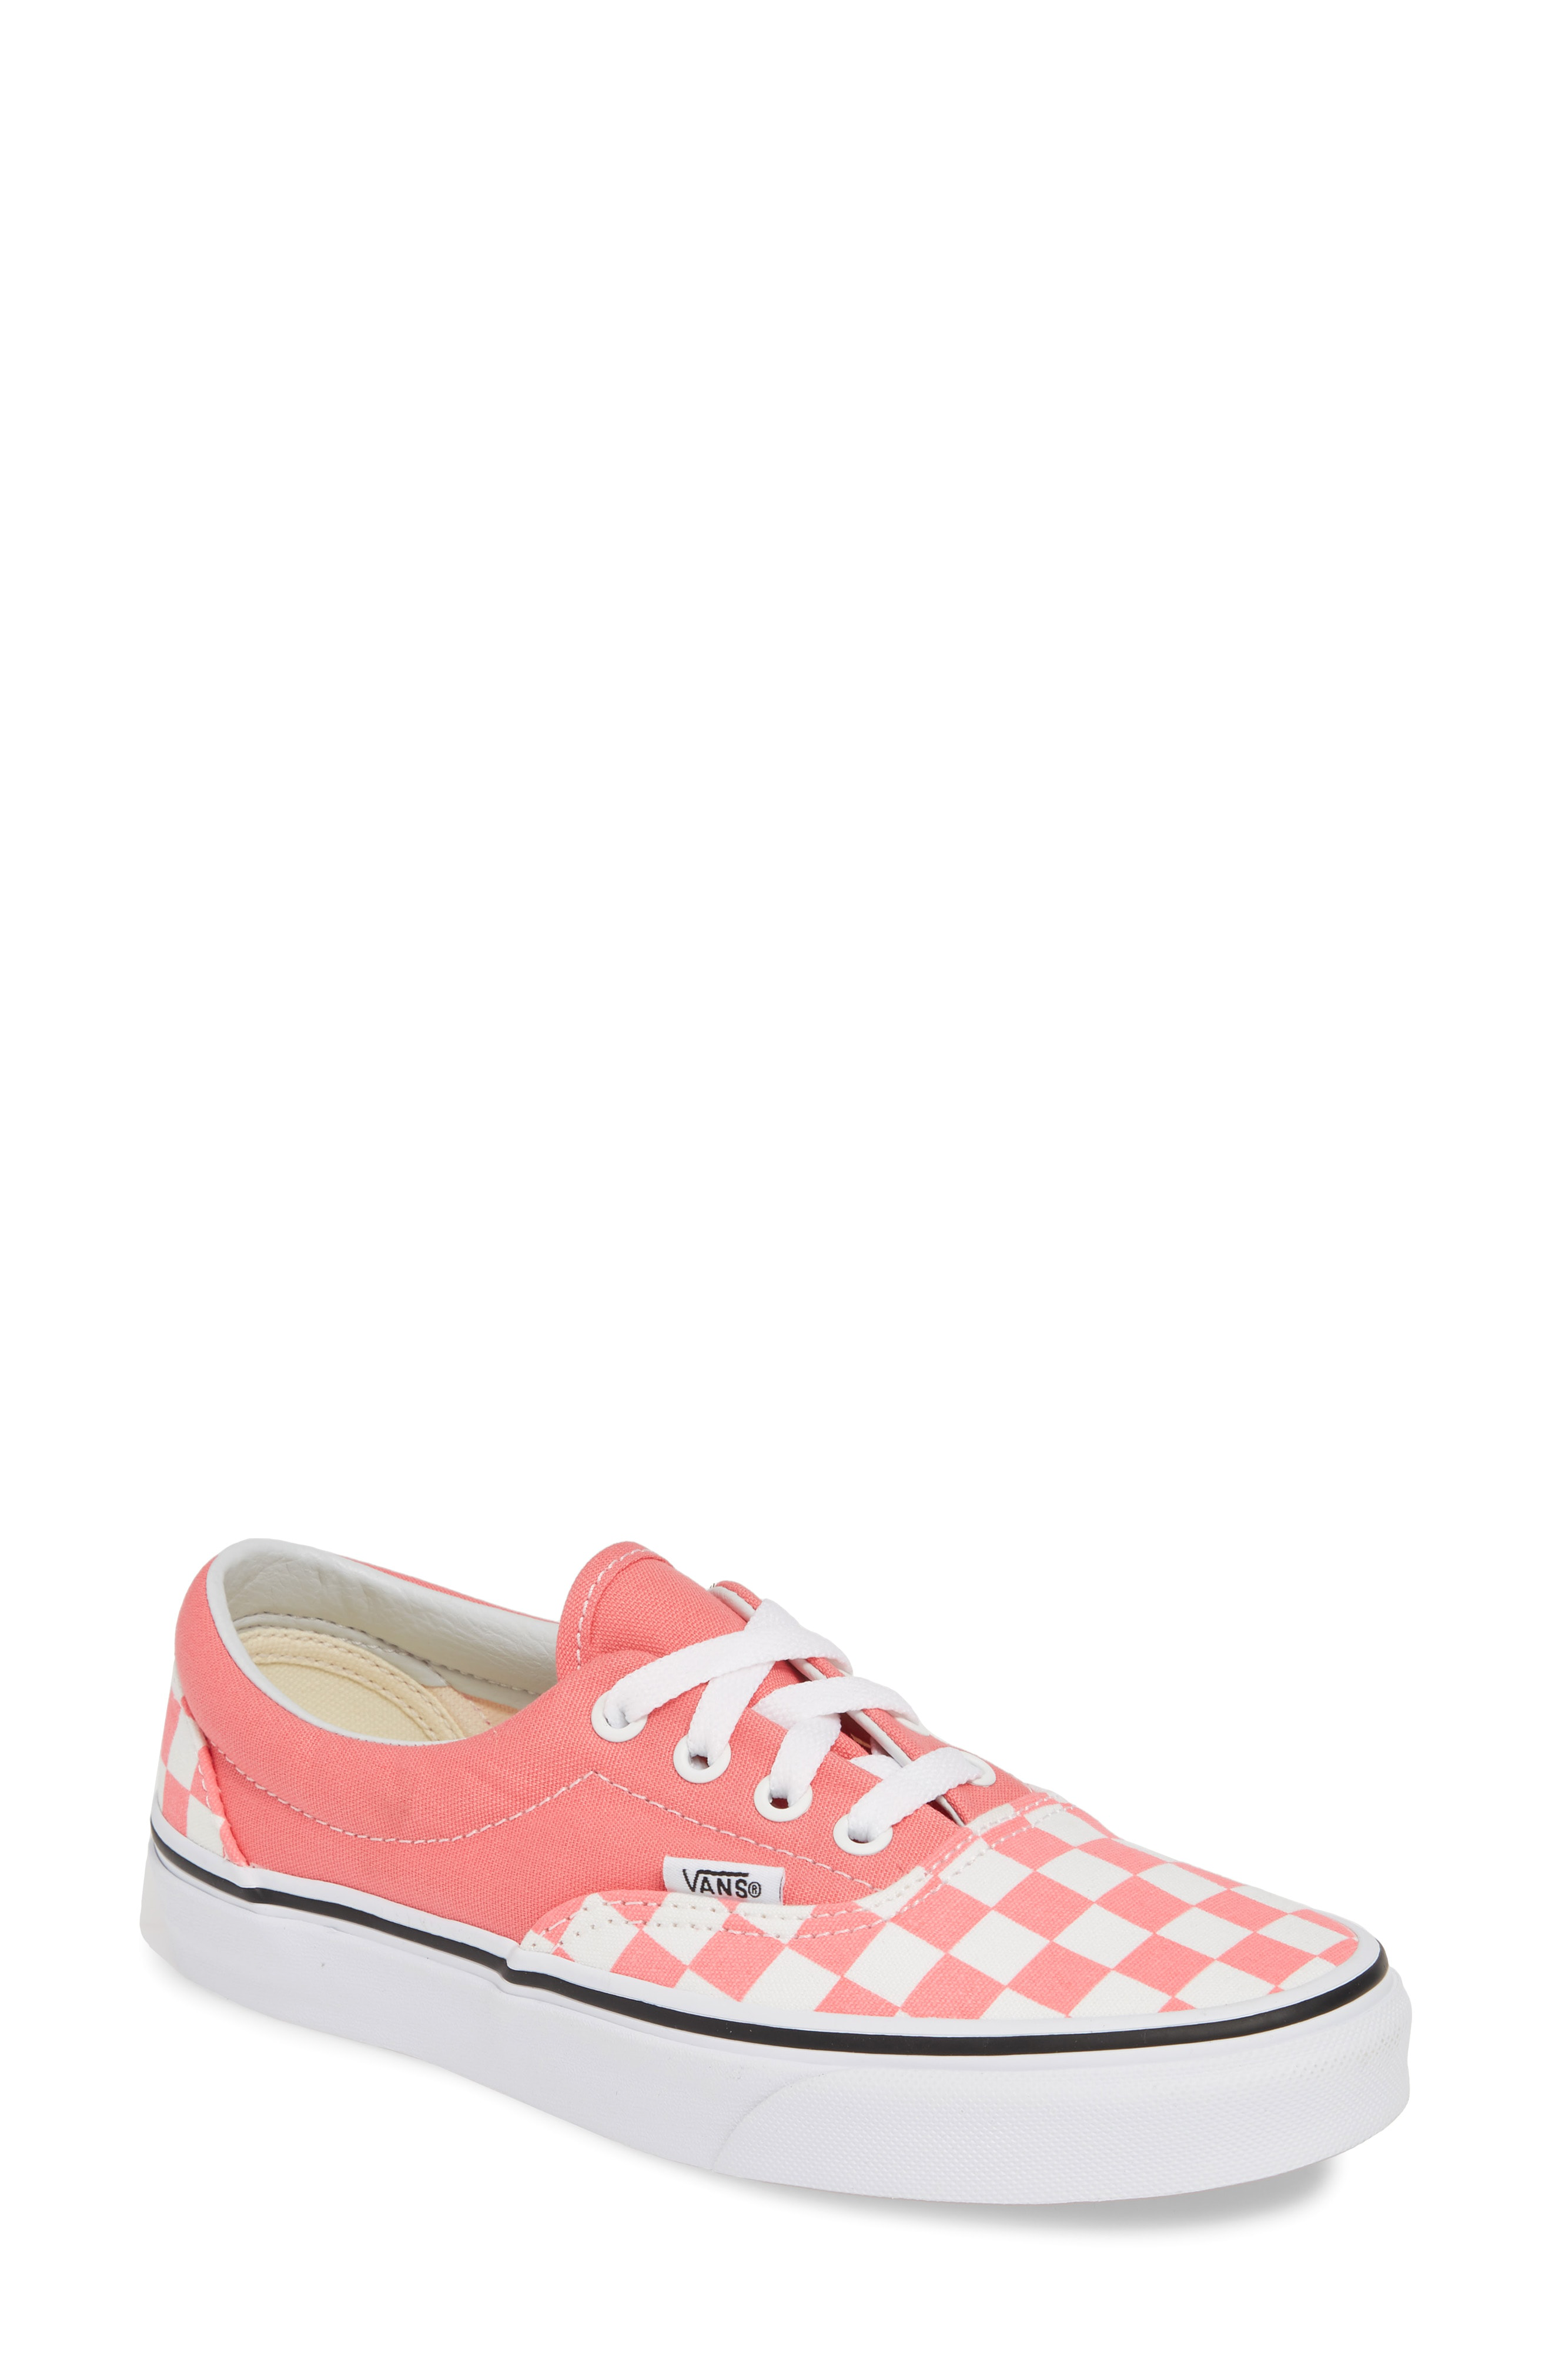 Vans Era WhiteModesens Up Ua Pink In Sneaker Strawberry True Lace kXnwP80O